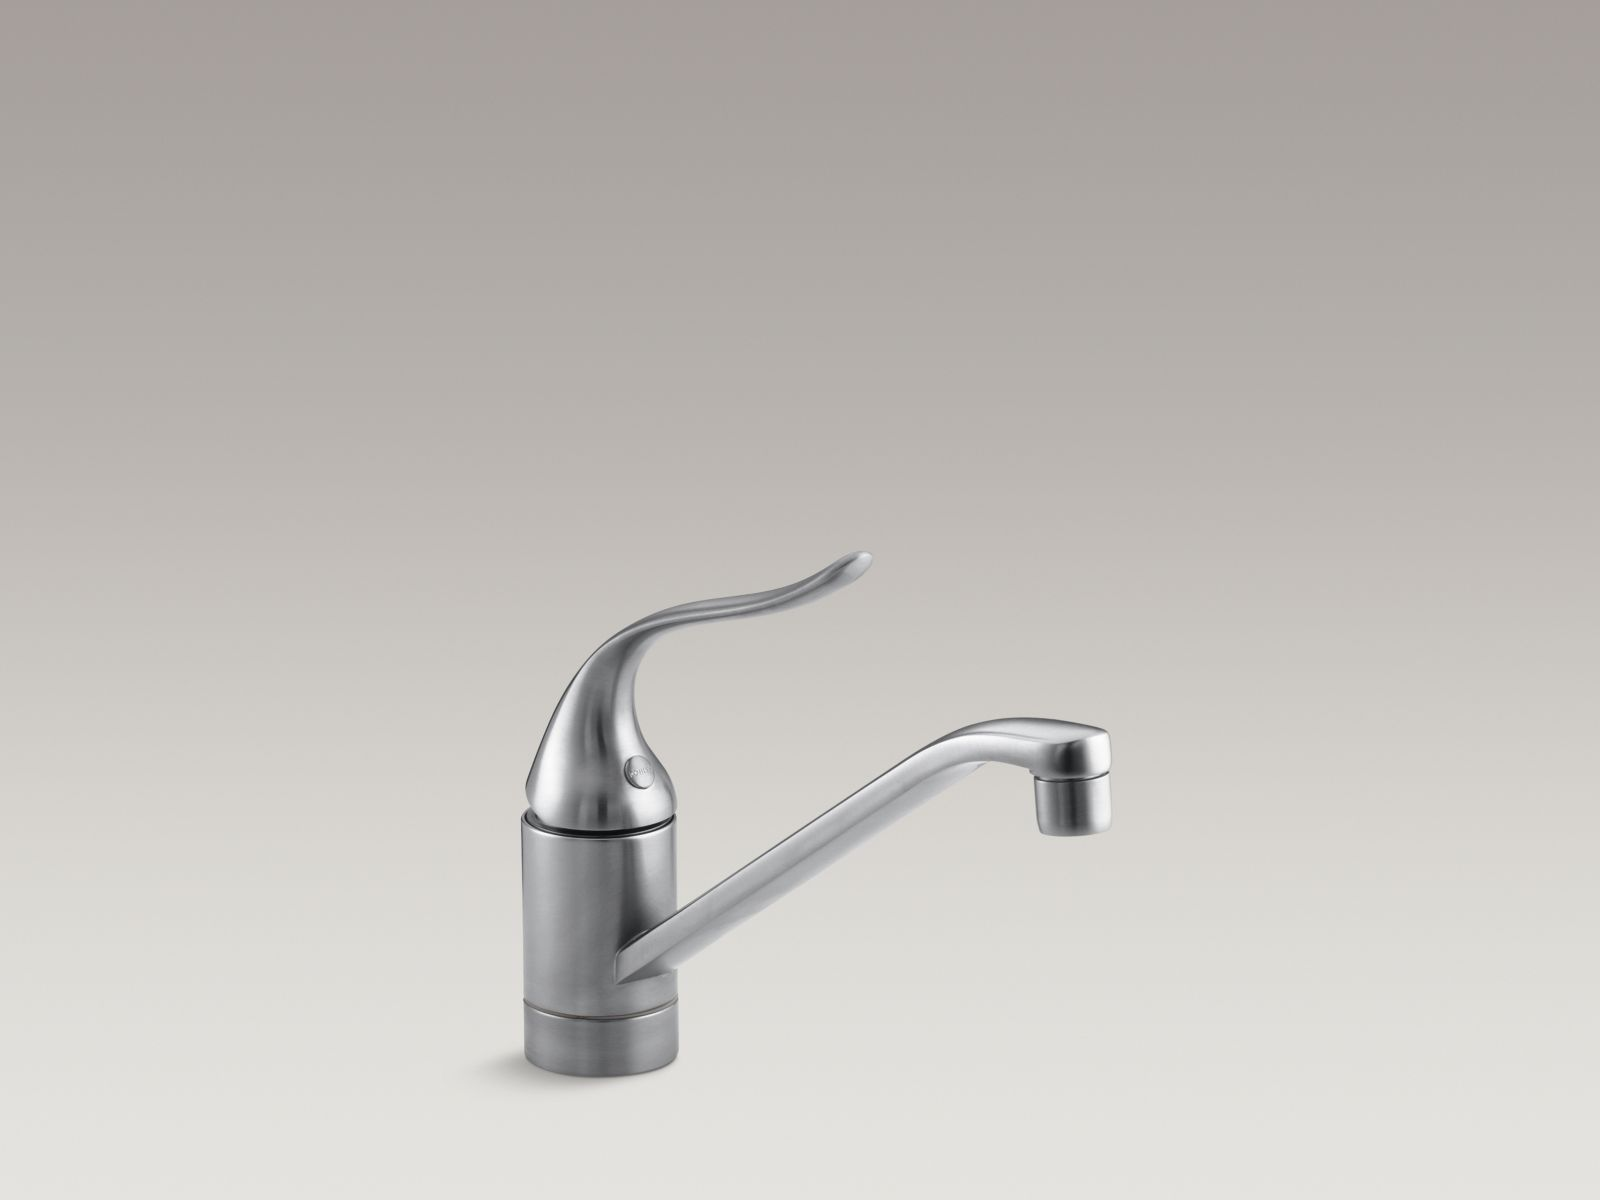 """Kohler K-15175-F-G Coralais Single-handle Kitchen Faucet with 8-1/2"""" Spout and Lever Handle Brushed Chrome"""